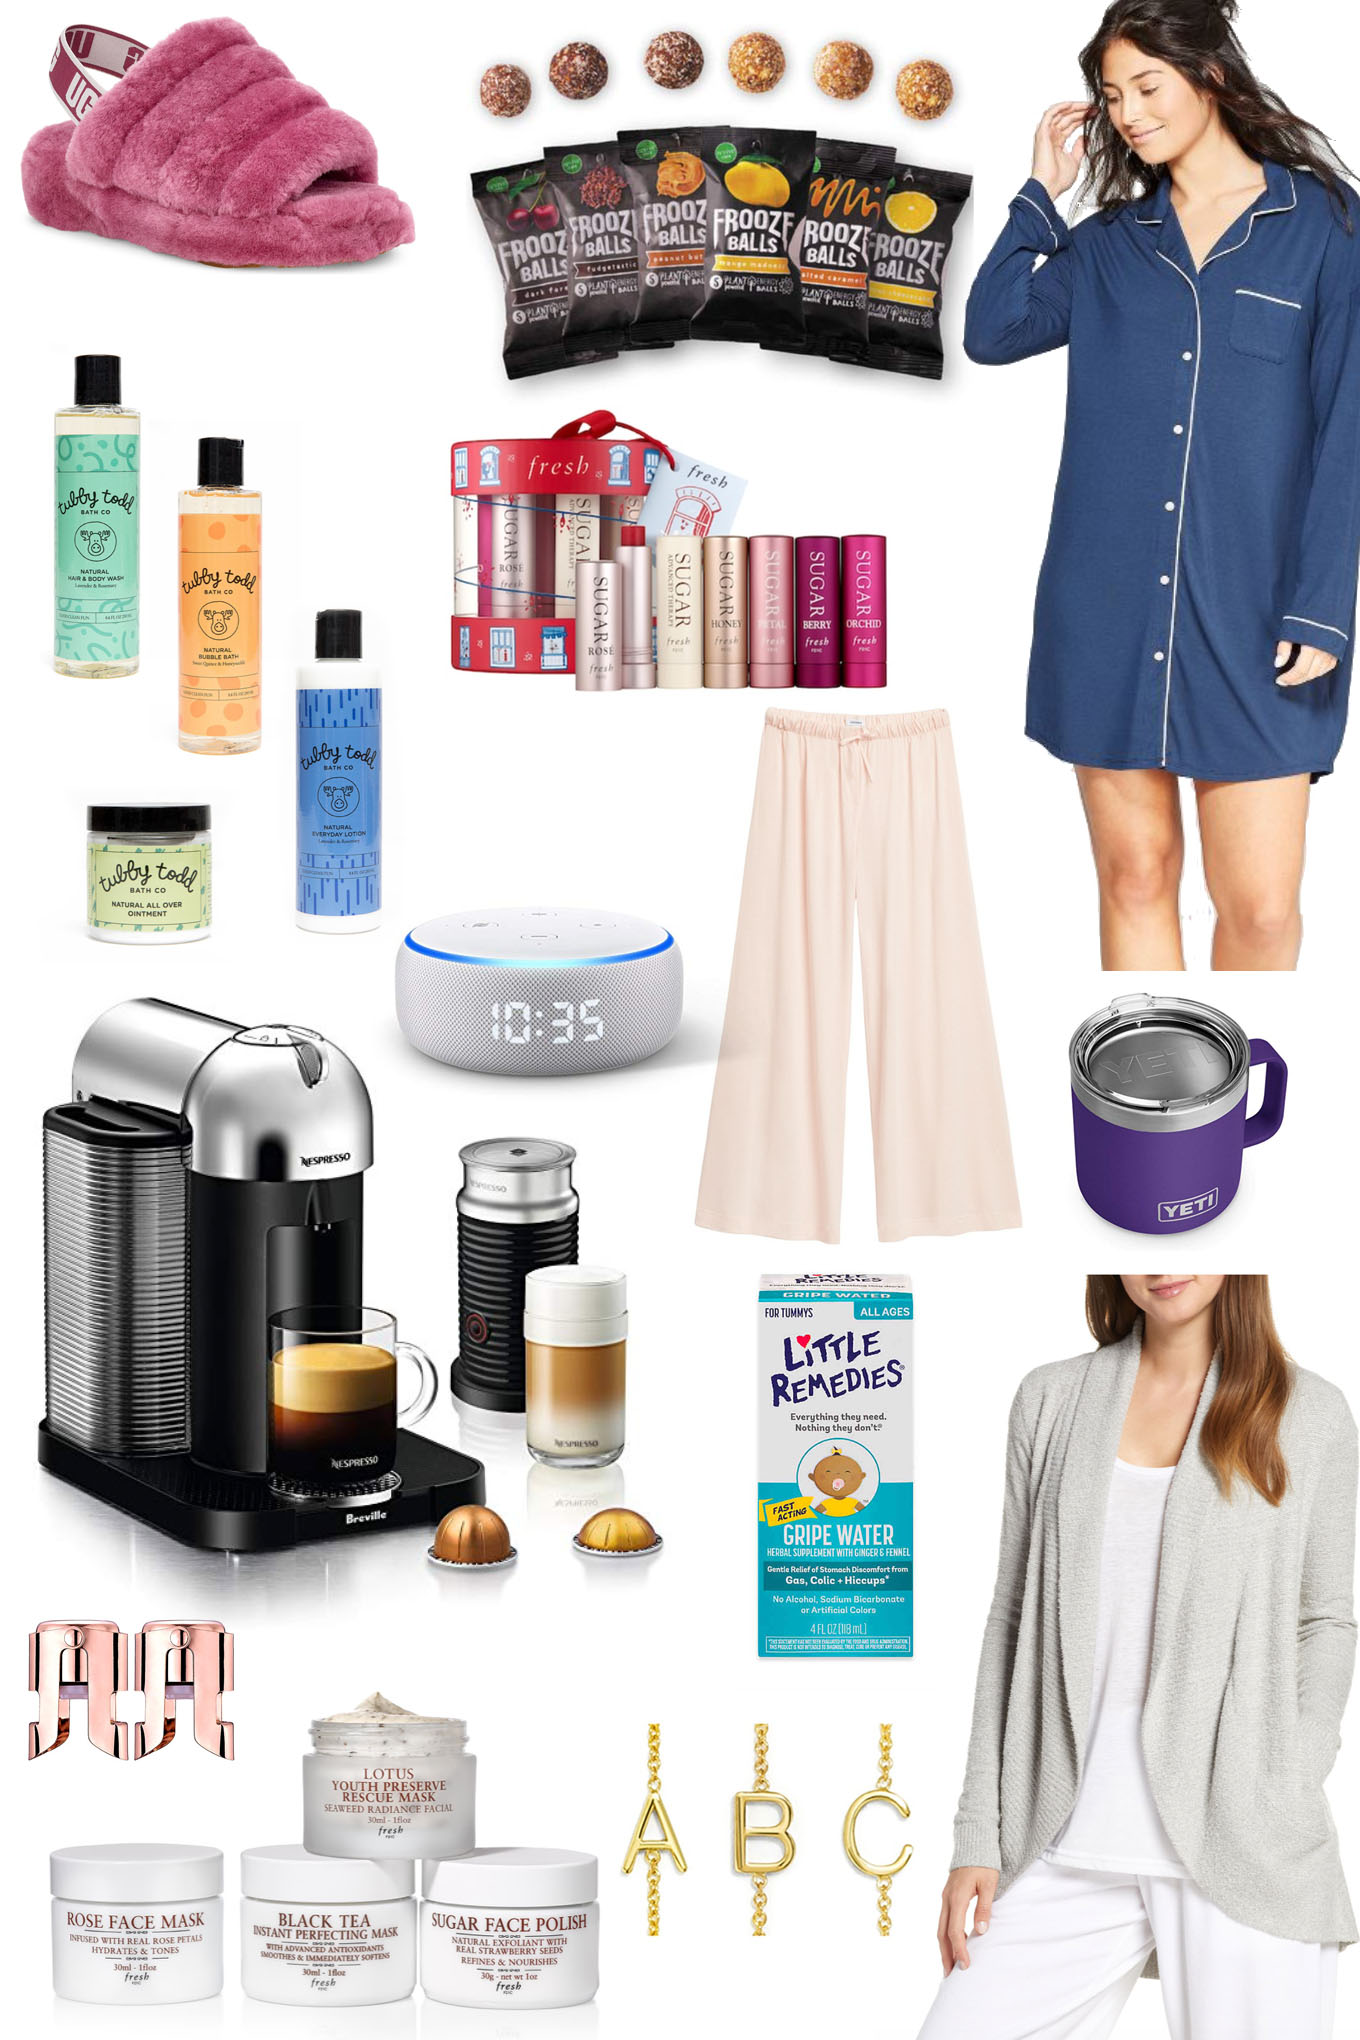 Amazing Gifts for New Moms by popular Chicago life and style blog, Glass of Glam: collage image of lounge pants, fuzzyslippers, Tubby Todd products, espresso maker, echo dot, cardigan, pajamas, yeti tumbler, initial bracelets, face cream, and lip products.